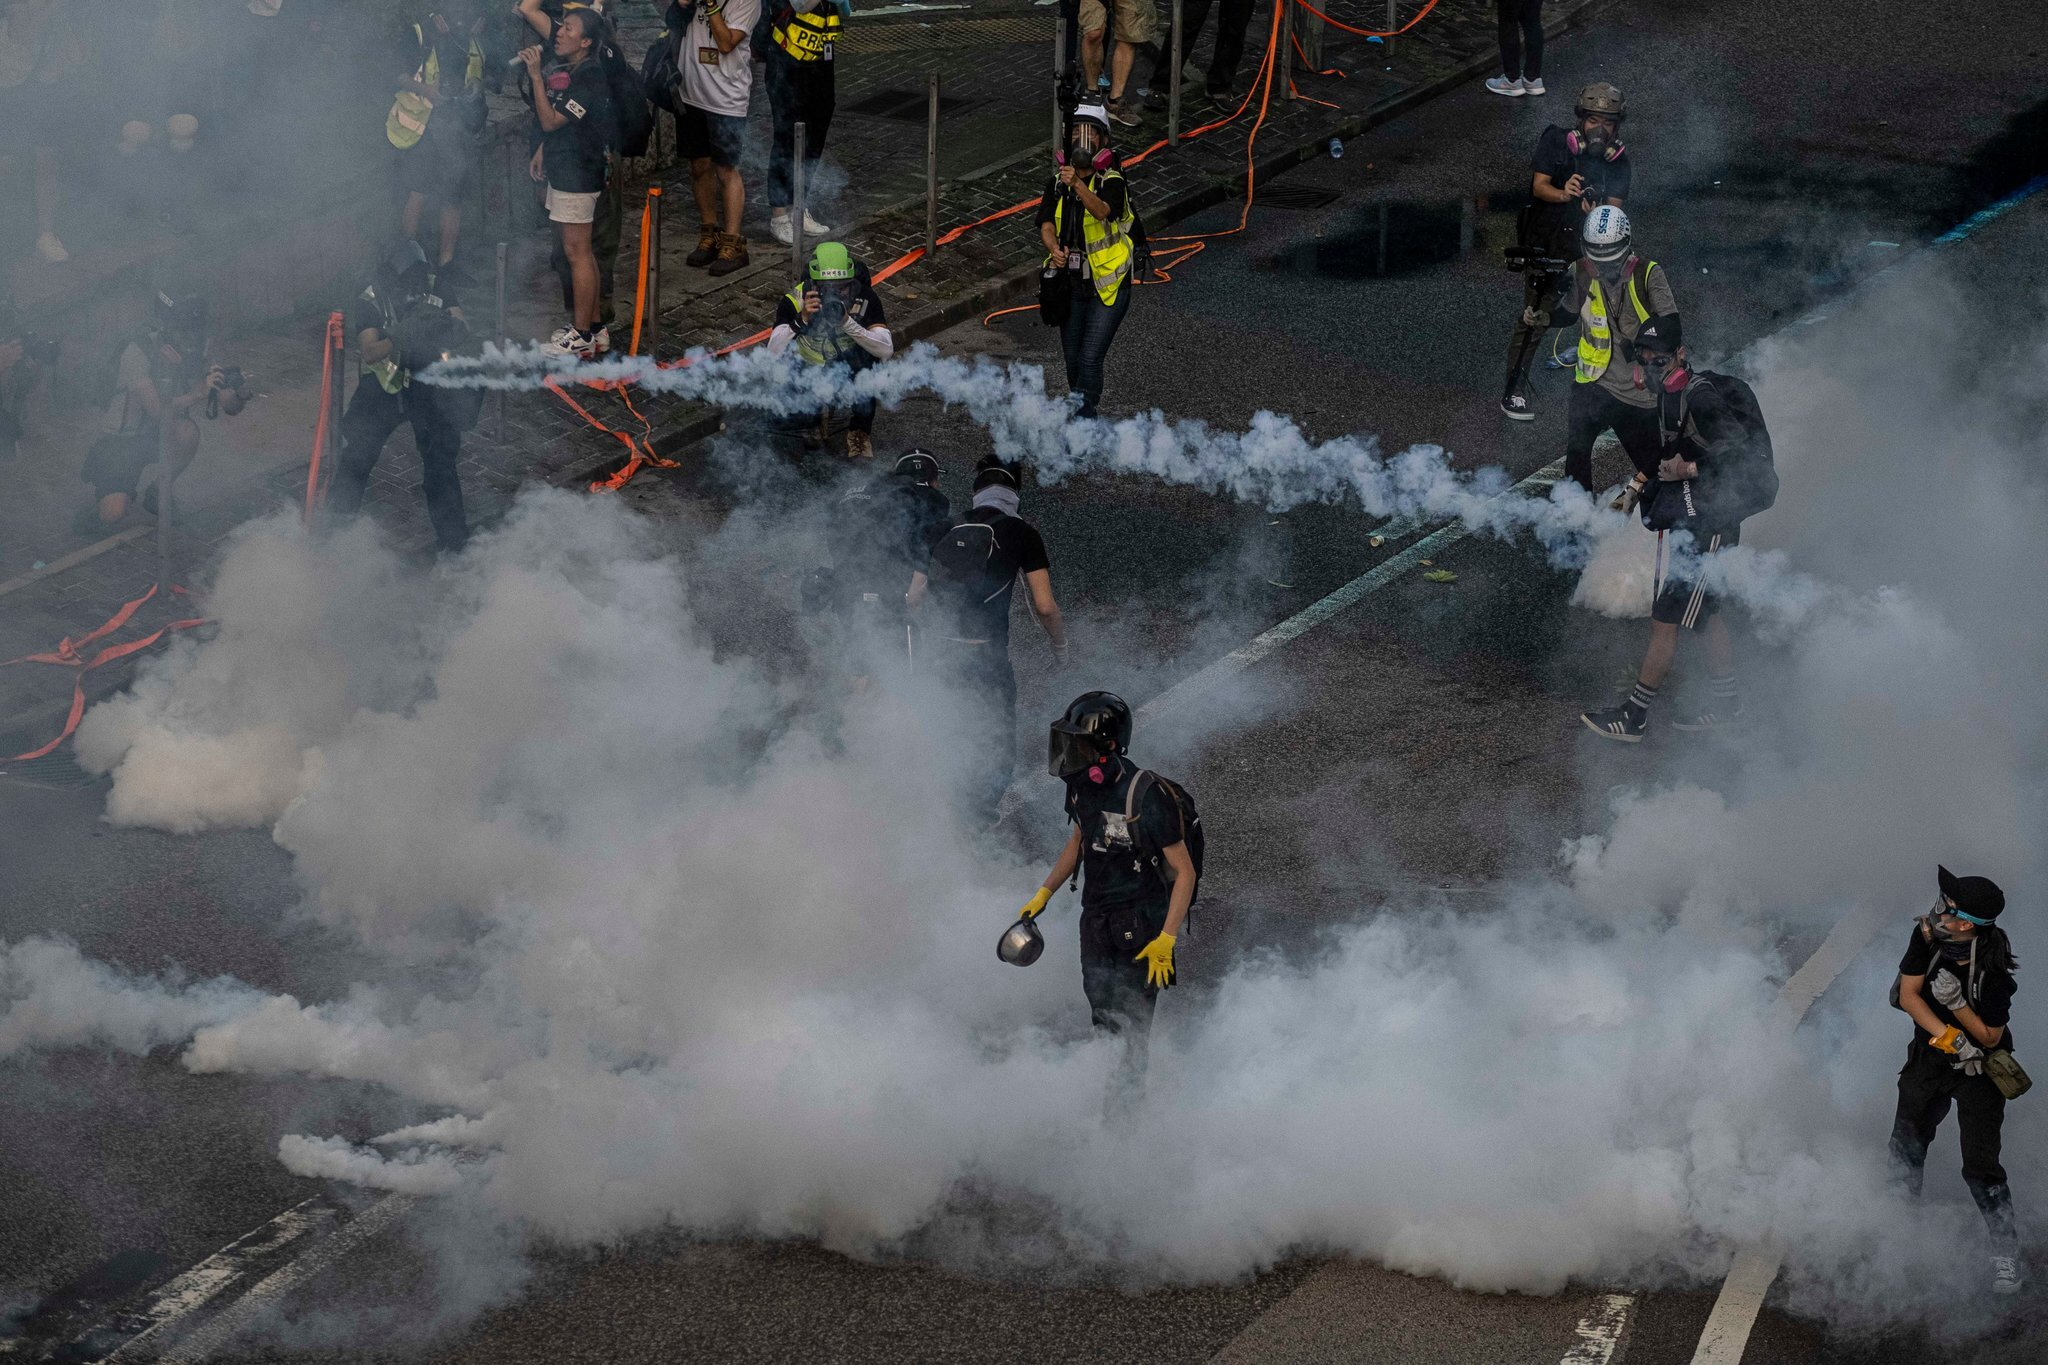 The masked protesters in Hong Kong hurled gasoline bombs at governmental buildings. Photo courtesy: Lam Yik Fei | The New York Times